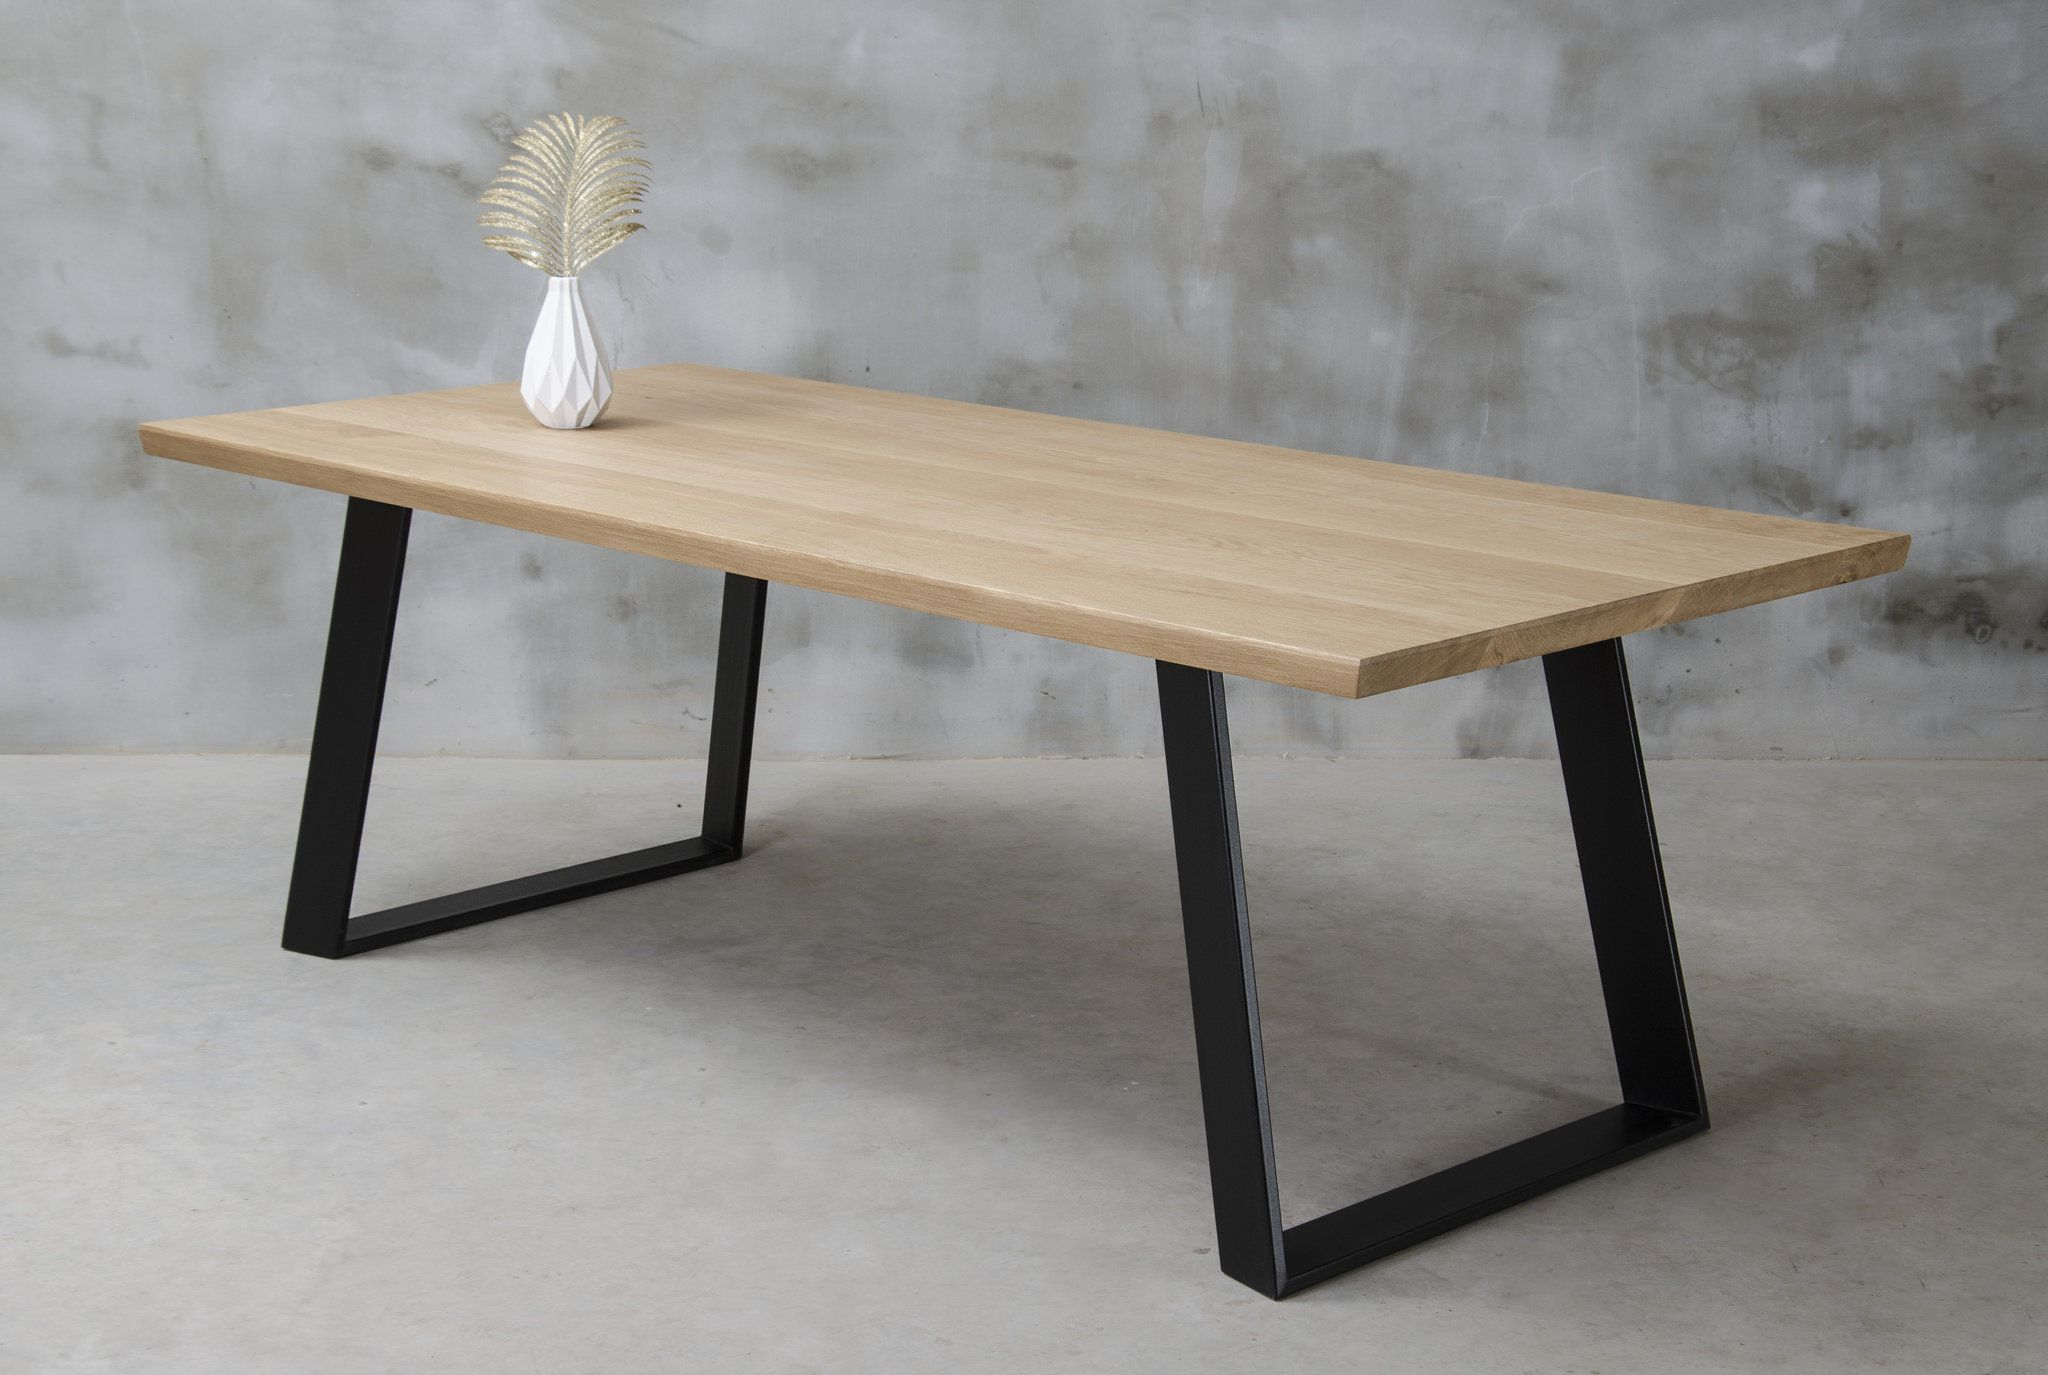 Live Edge Dining Table Oak Table One Slab Table Wooden Table Industrial Table Dining Table Oak Dining Table